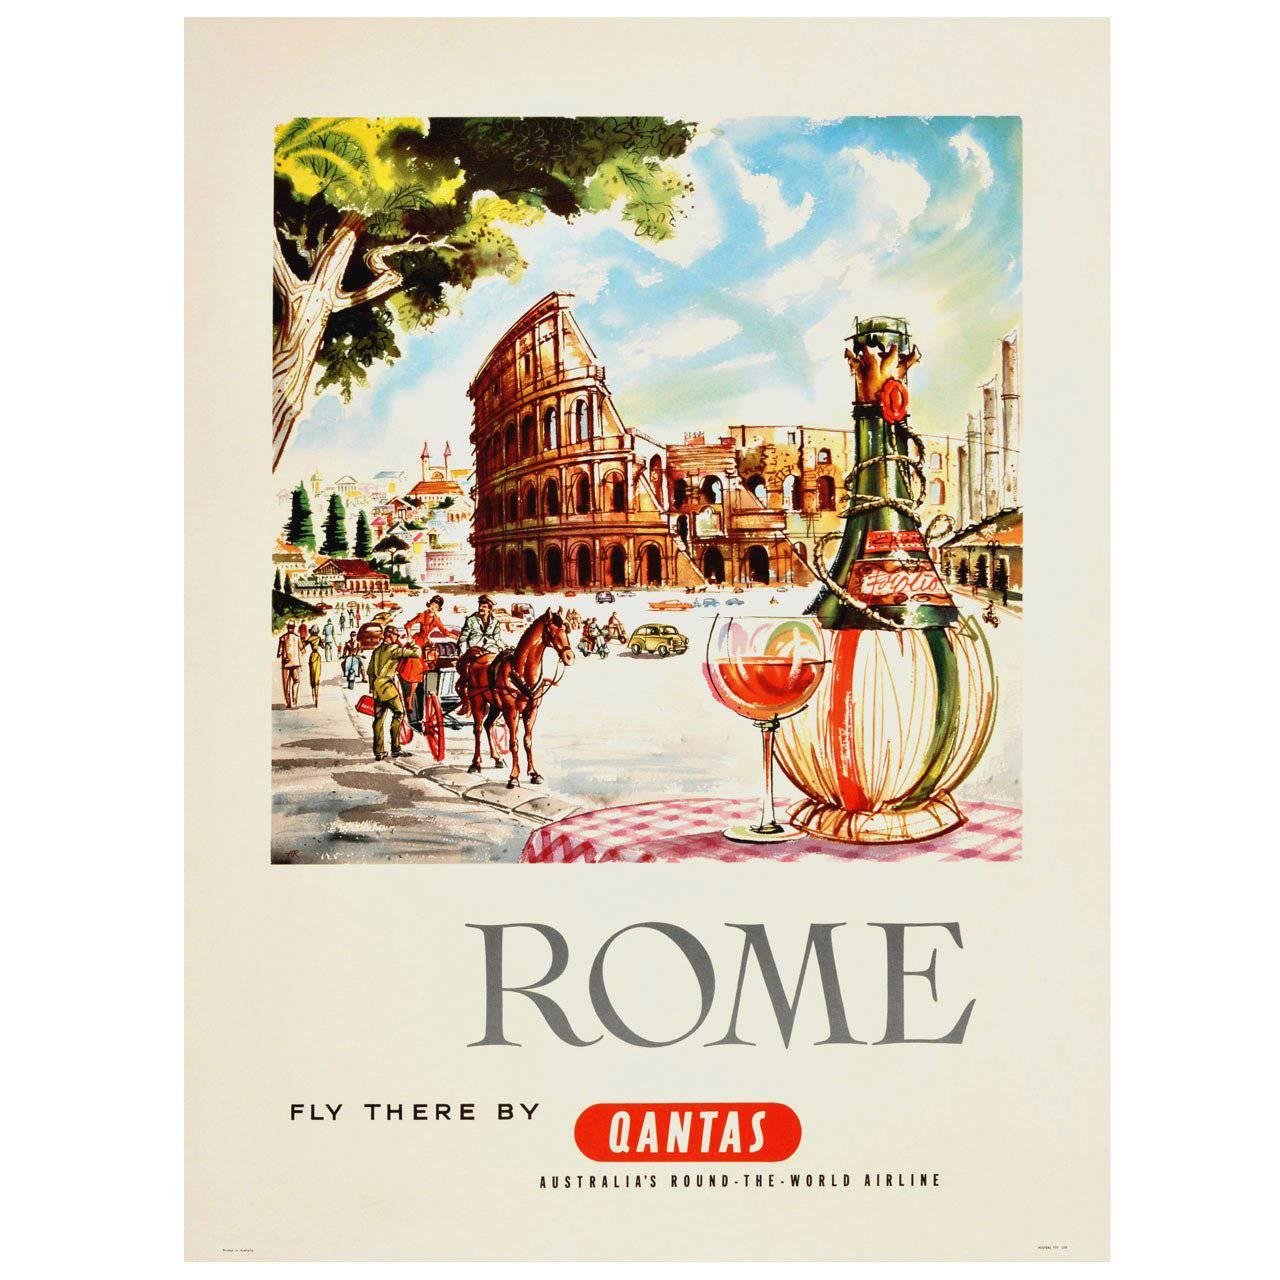 """Original Travel Advertising Poster by Harry Rogers """"Rome - Fly There by Qantas"""""""